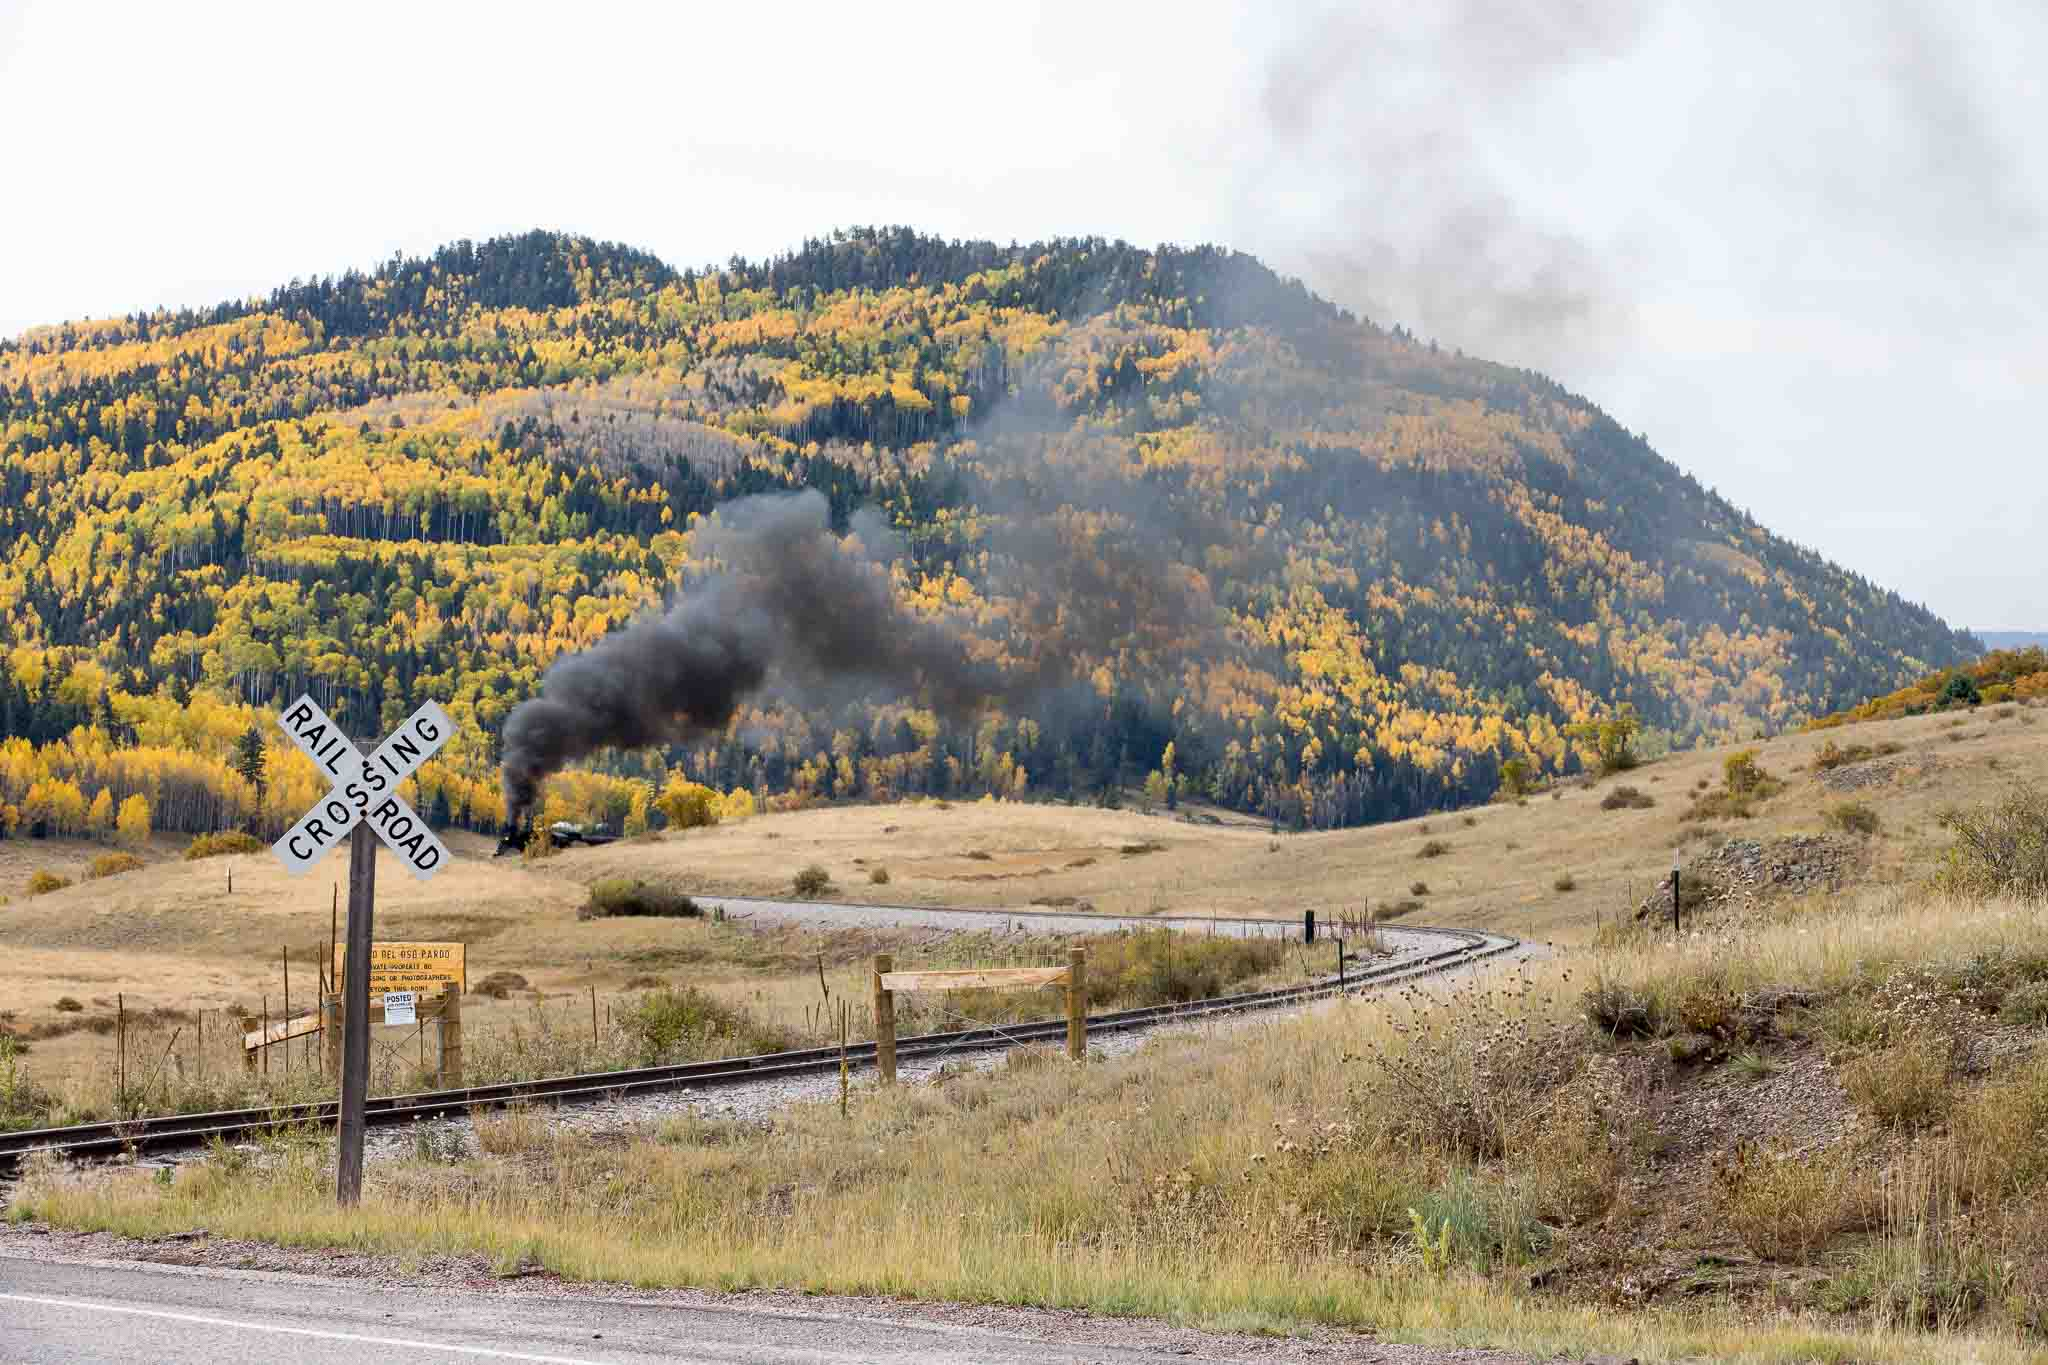 Cumbres & Toltec excursion train approaching a railroad crossing north of Chama NM, October 8, 2014